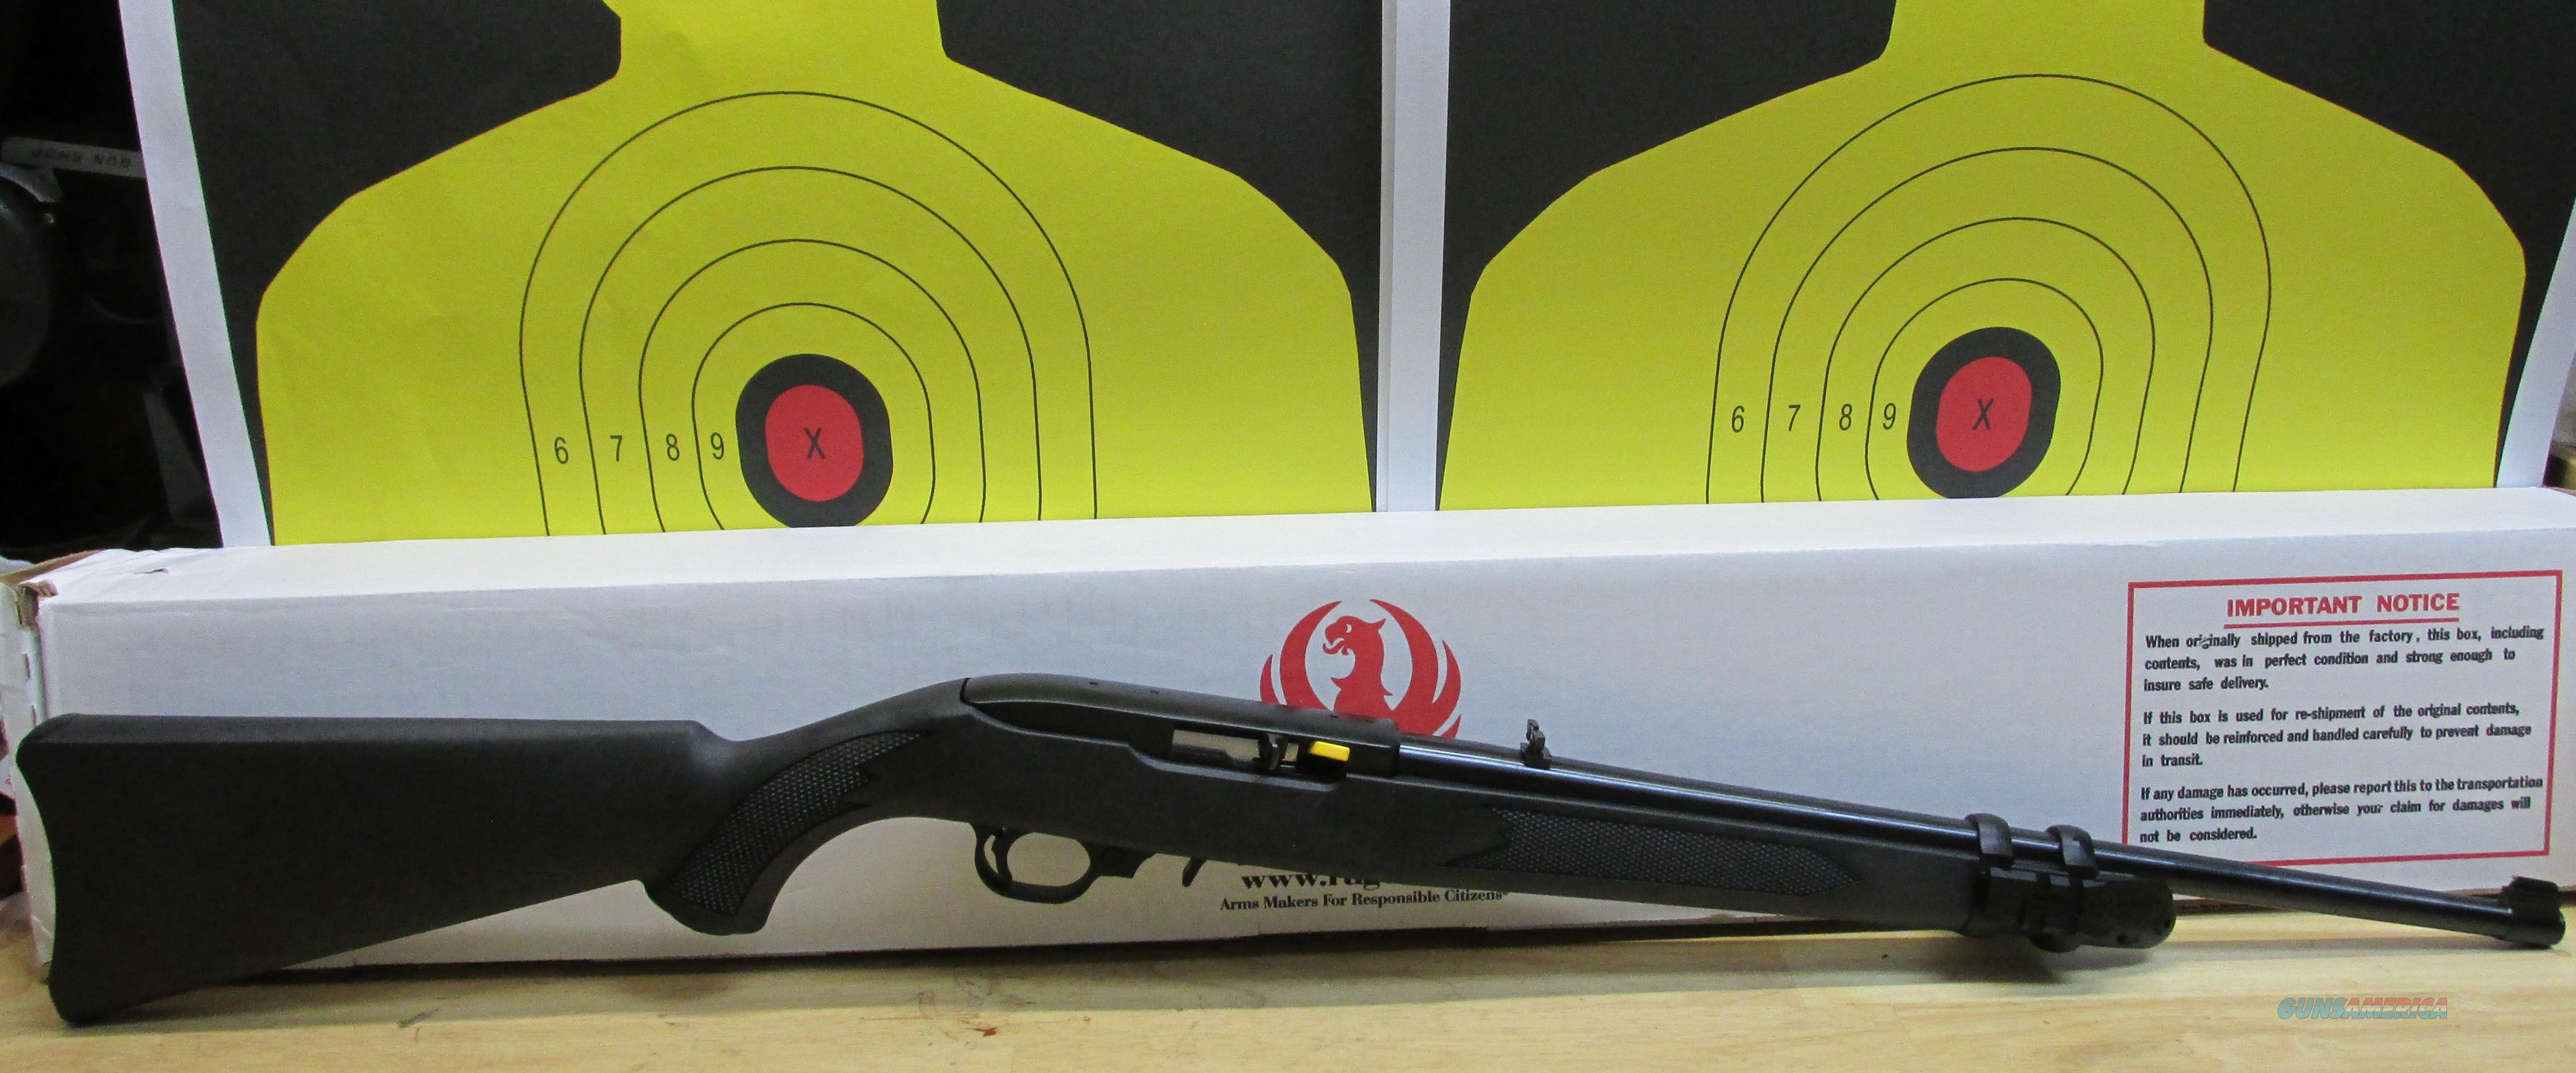 "RUGER 10/22 .22LR RIFLE BLACK SYNTHETIC STOCK WITH LASERMAX RED LASER, 10 ROUND MAGAZINE, 18"" BARREL  Guns > Rifles > Ruger Rifles > 10-22"